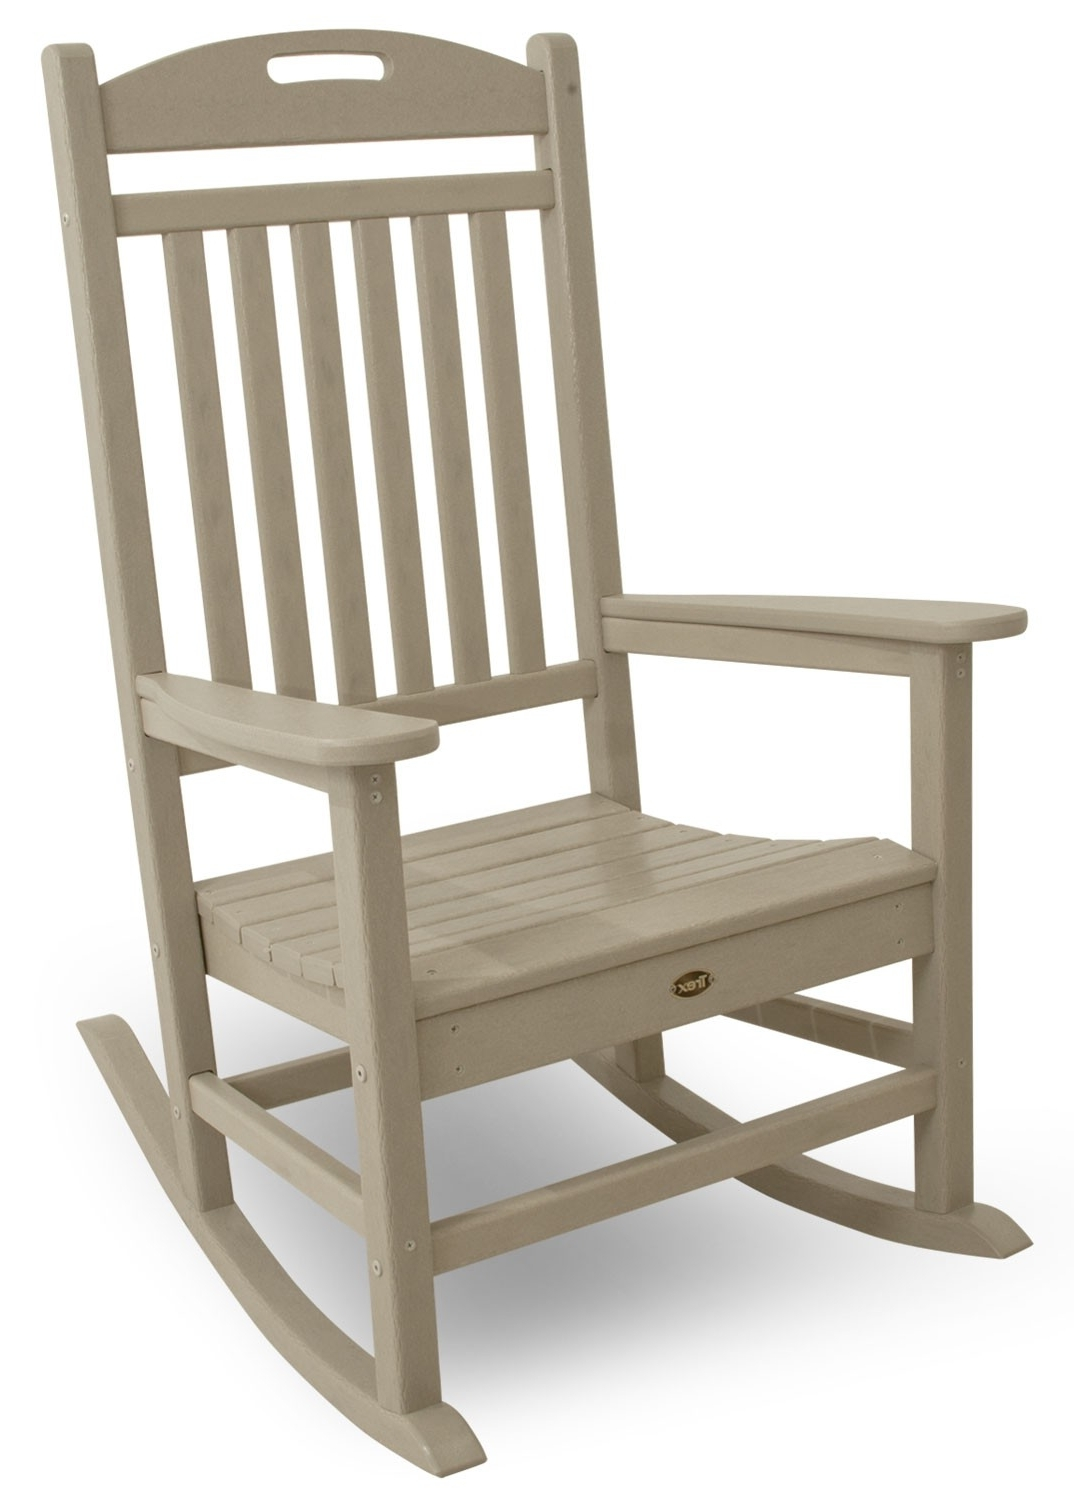 Yacht Club Rocking Chair For Most Recently Released Outdoor Rocking Chairs (View 9 of 20)